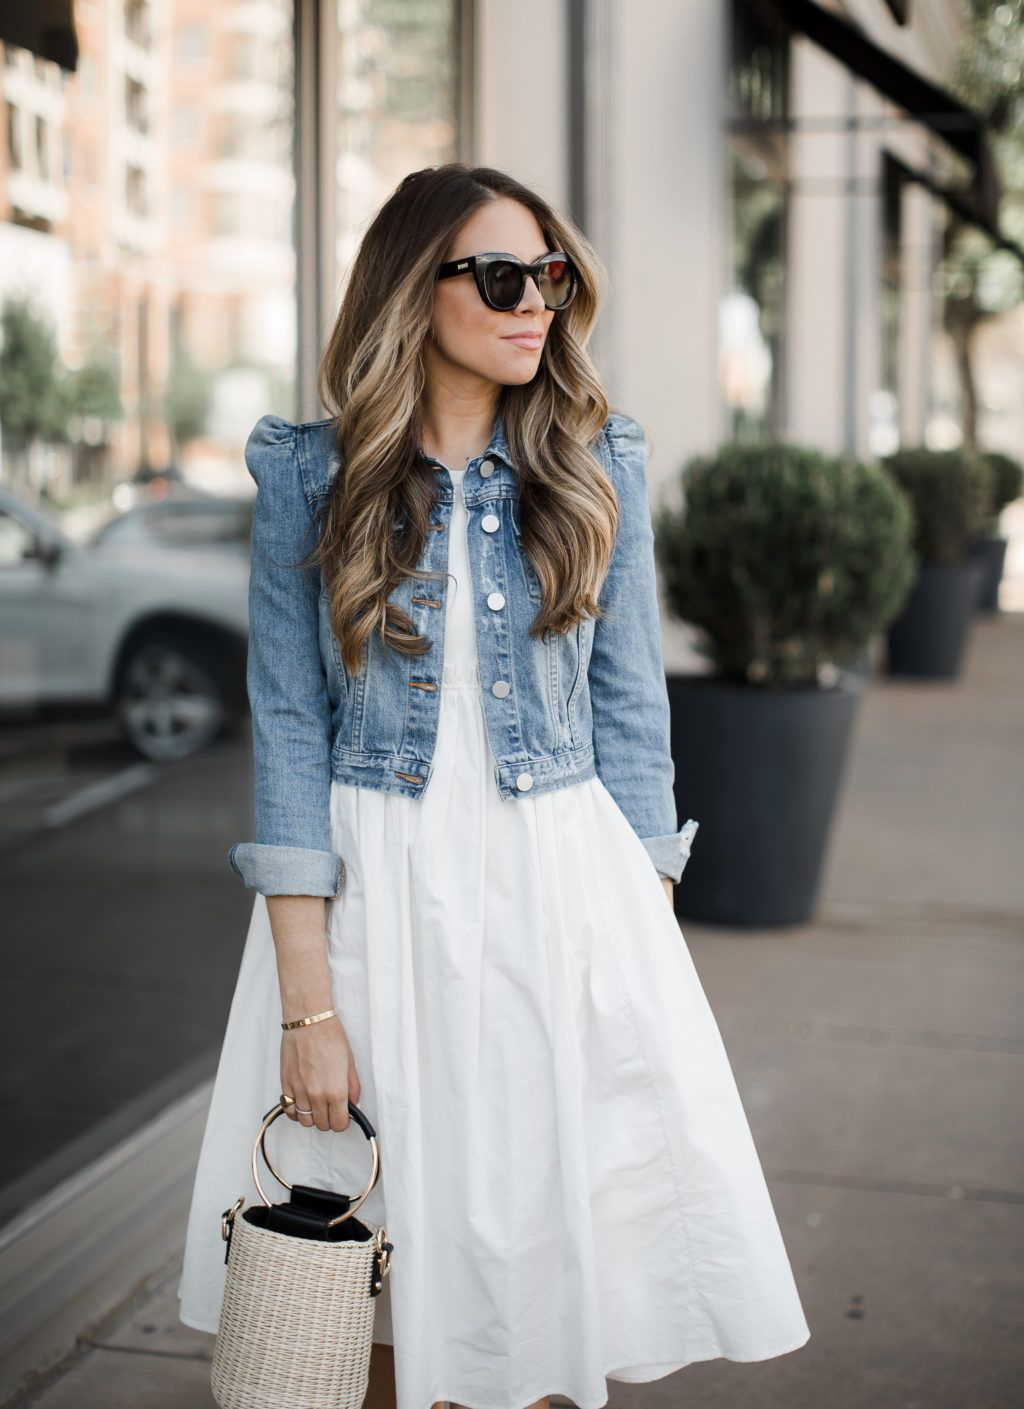 White Dresses For Summer Under 150 The Teacher Diva A Dallas Fashion Blog Featuring Beauty L Summer Dress Outfits Denim Jacket With Dress Stylish Dresses [ 1409 x 1024 Pixel ]